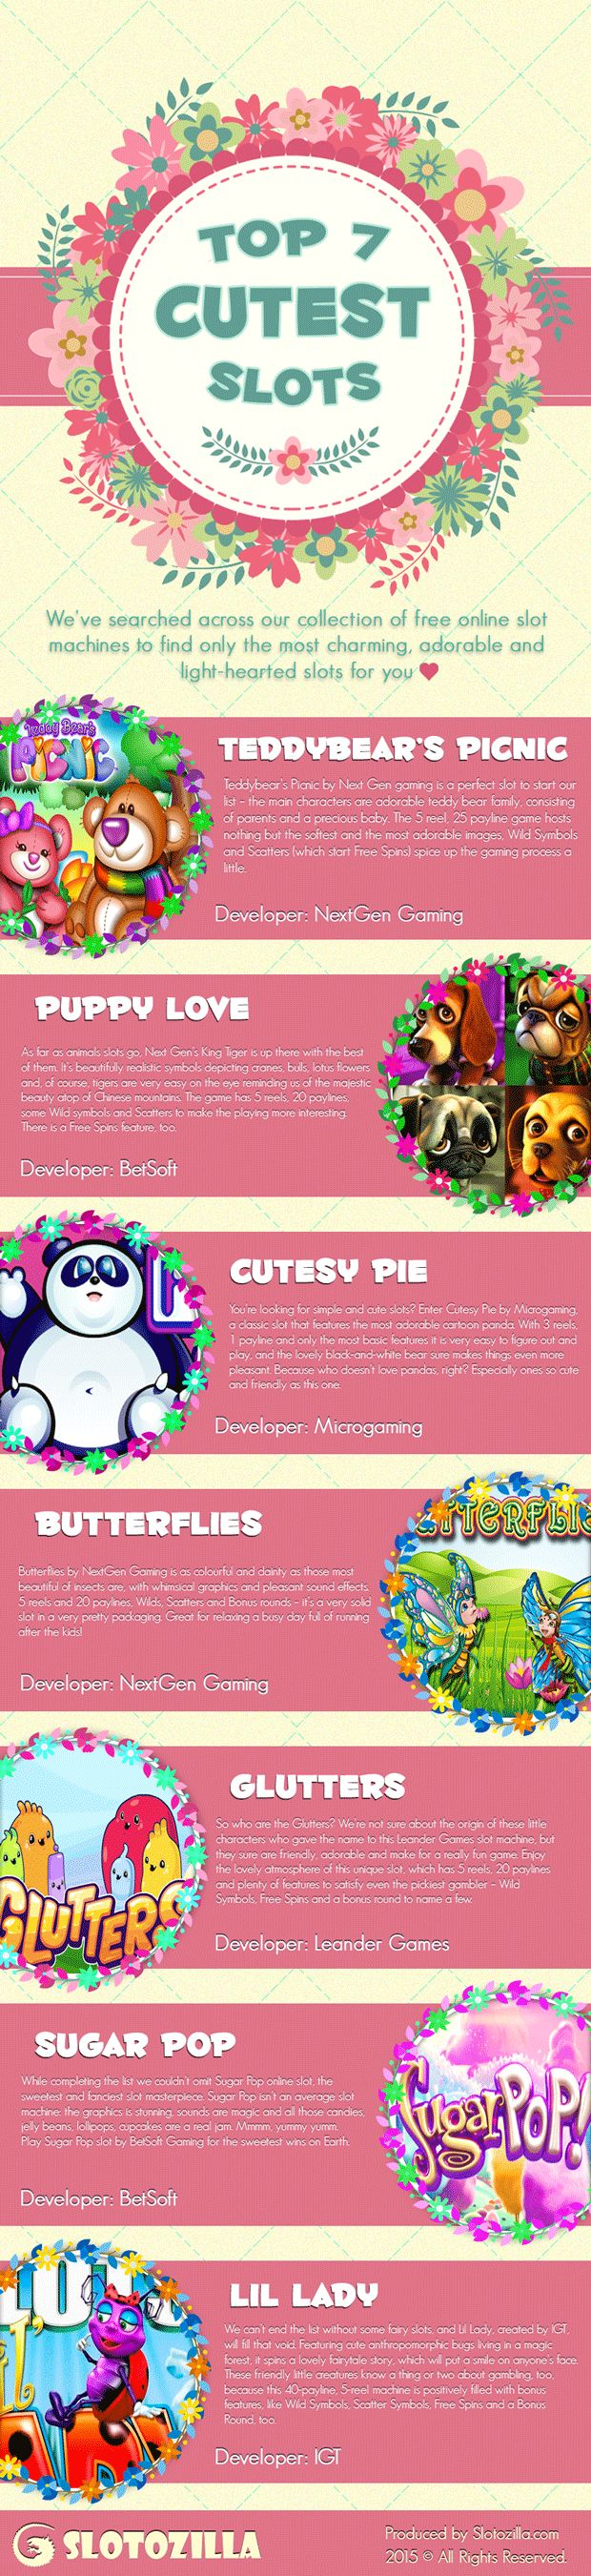 Top Free and Cutest Online Slot Machine Games to Play | Casino Infographics: